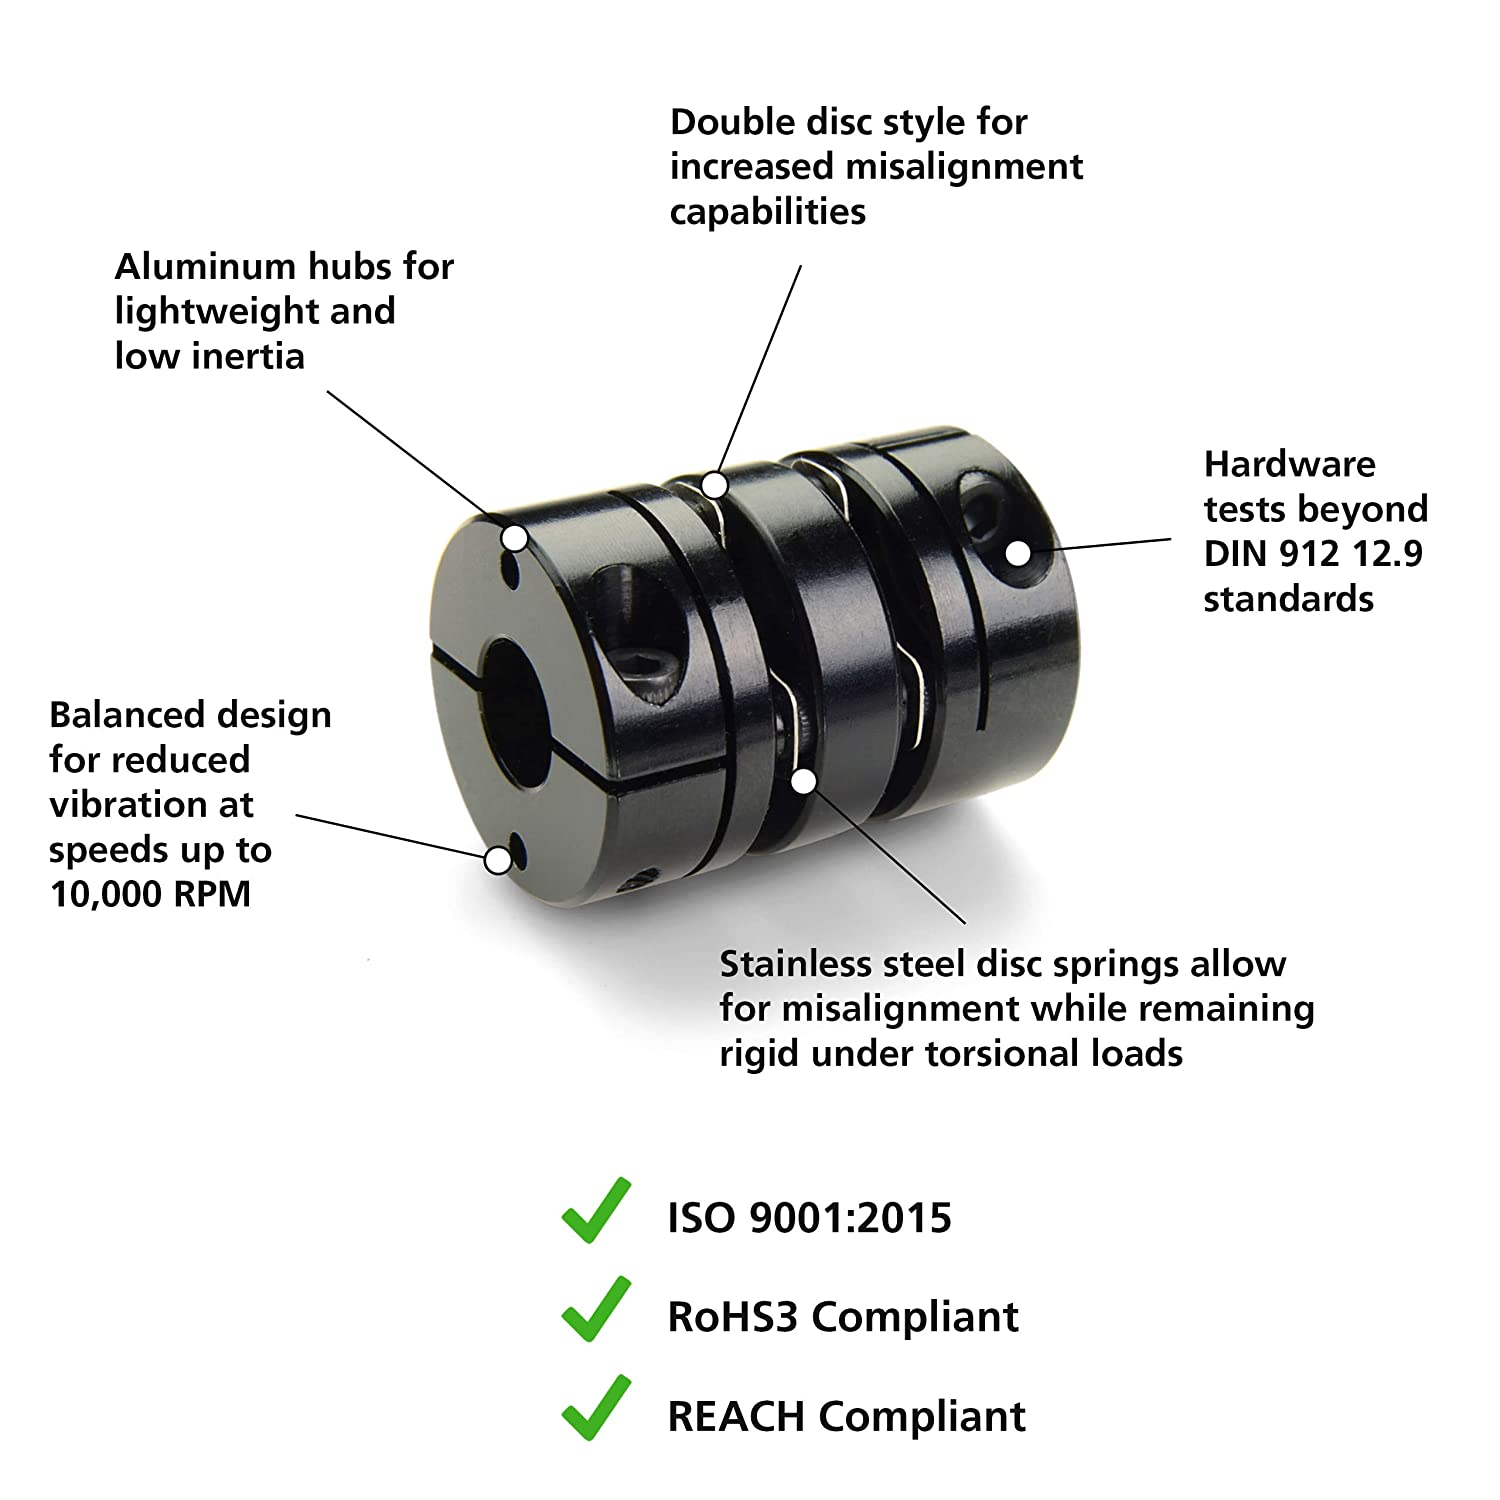 Ruland MBS51-20-15-A 2024 or 7075 Aluminum Hubs Bellows Coupling 50.8 mm OD Set Screw Style 58.7 mm Length 20 mm x 15 mm Bores